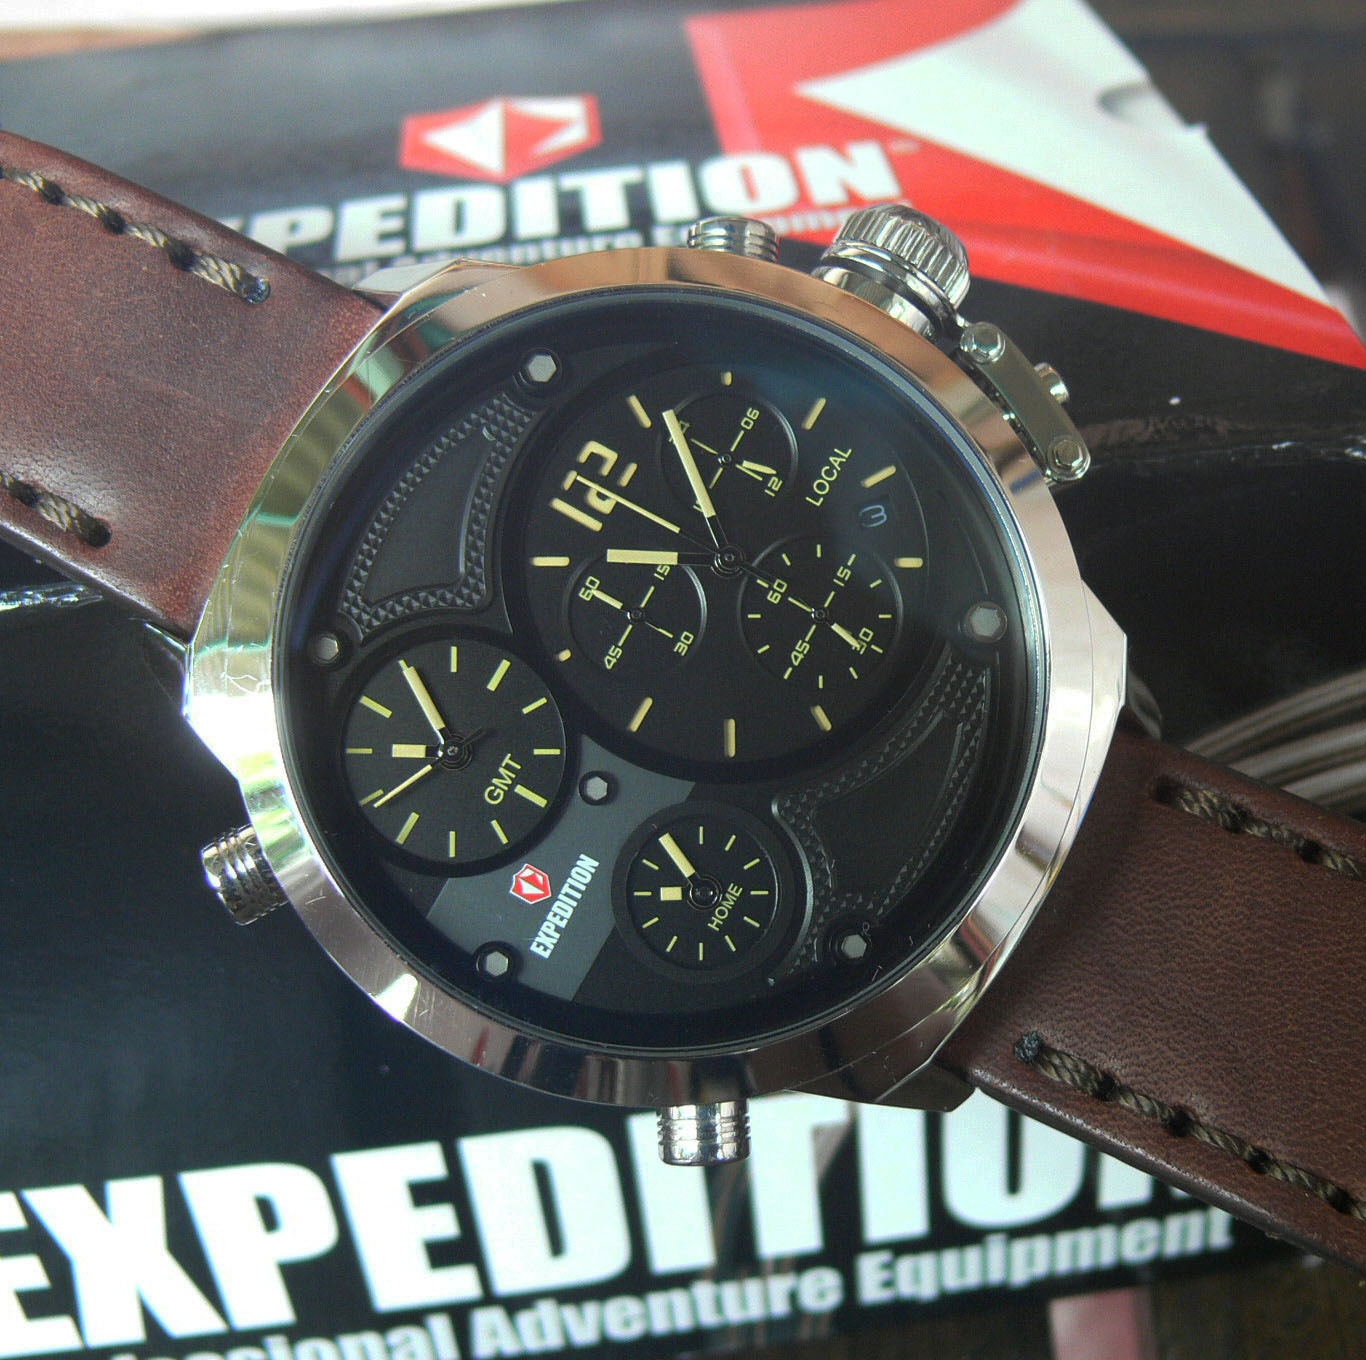 Expediton Triple Time Jam Tangan Pria Leather Strap Brown E6396 Tanga Expedition 6631 Hitam Original Jual E 6396 Chronograph Warungtjilik Tokopedia